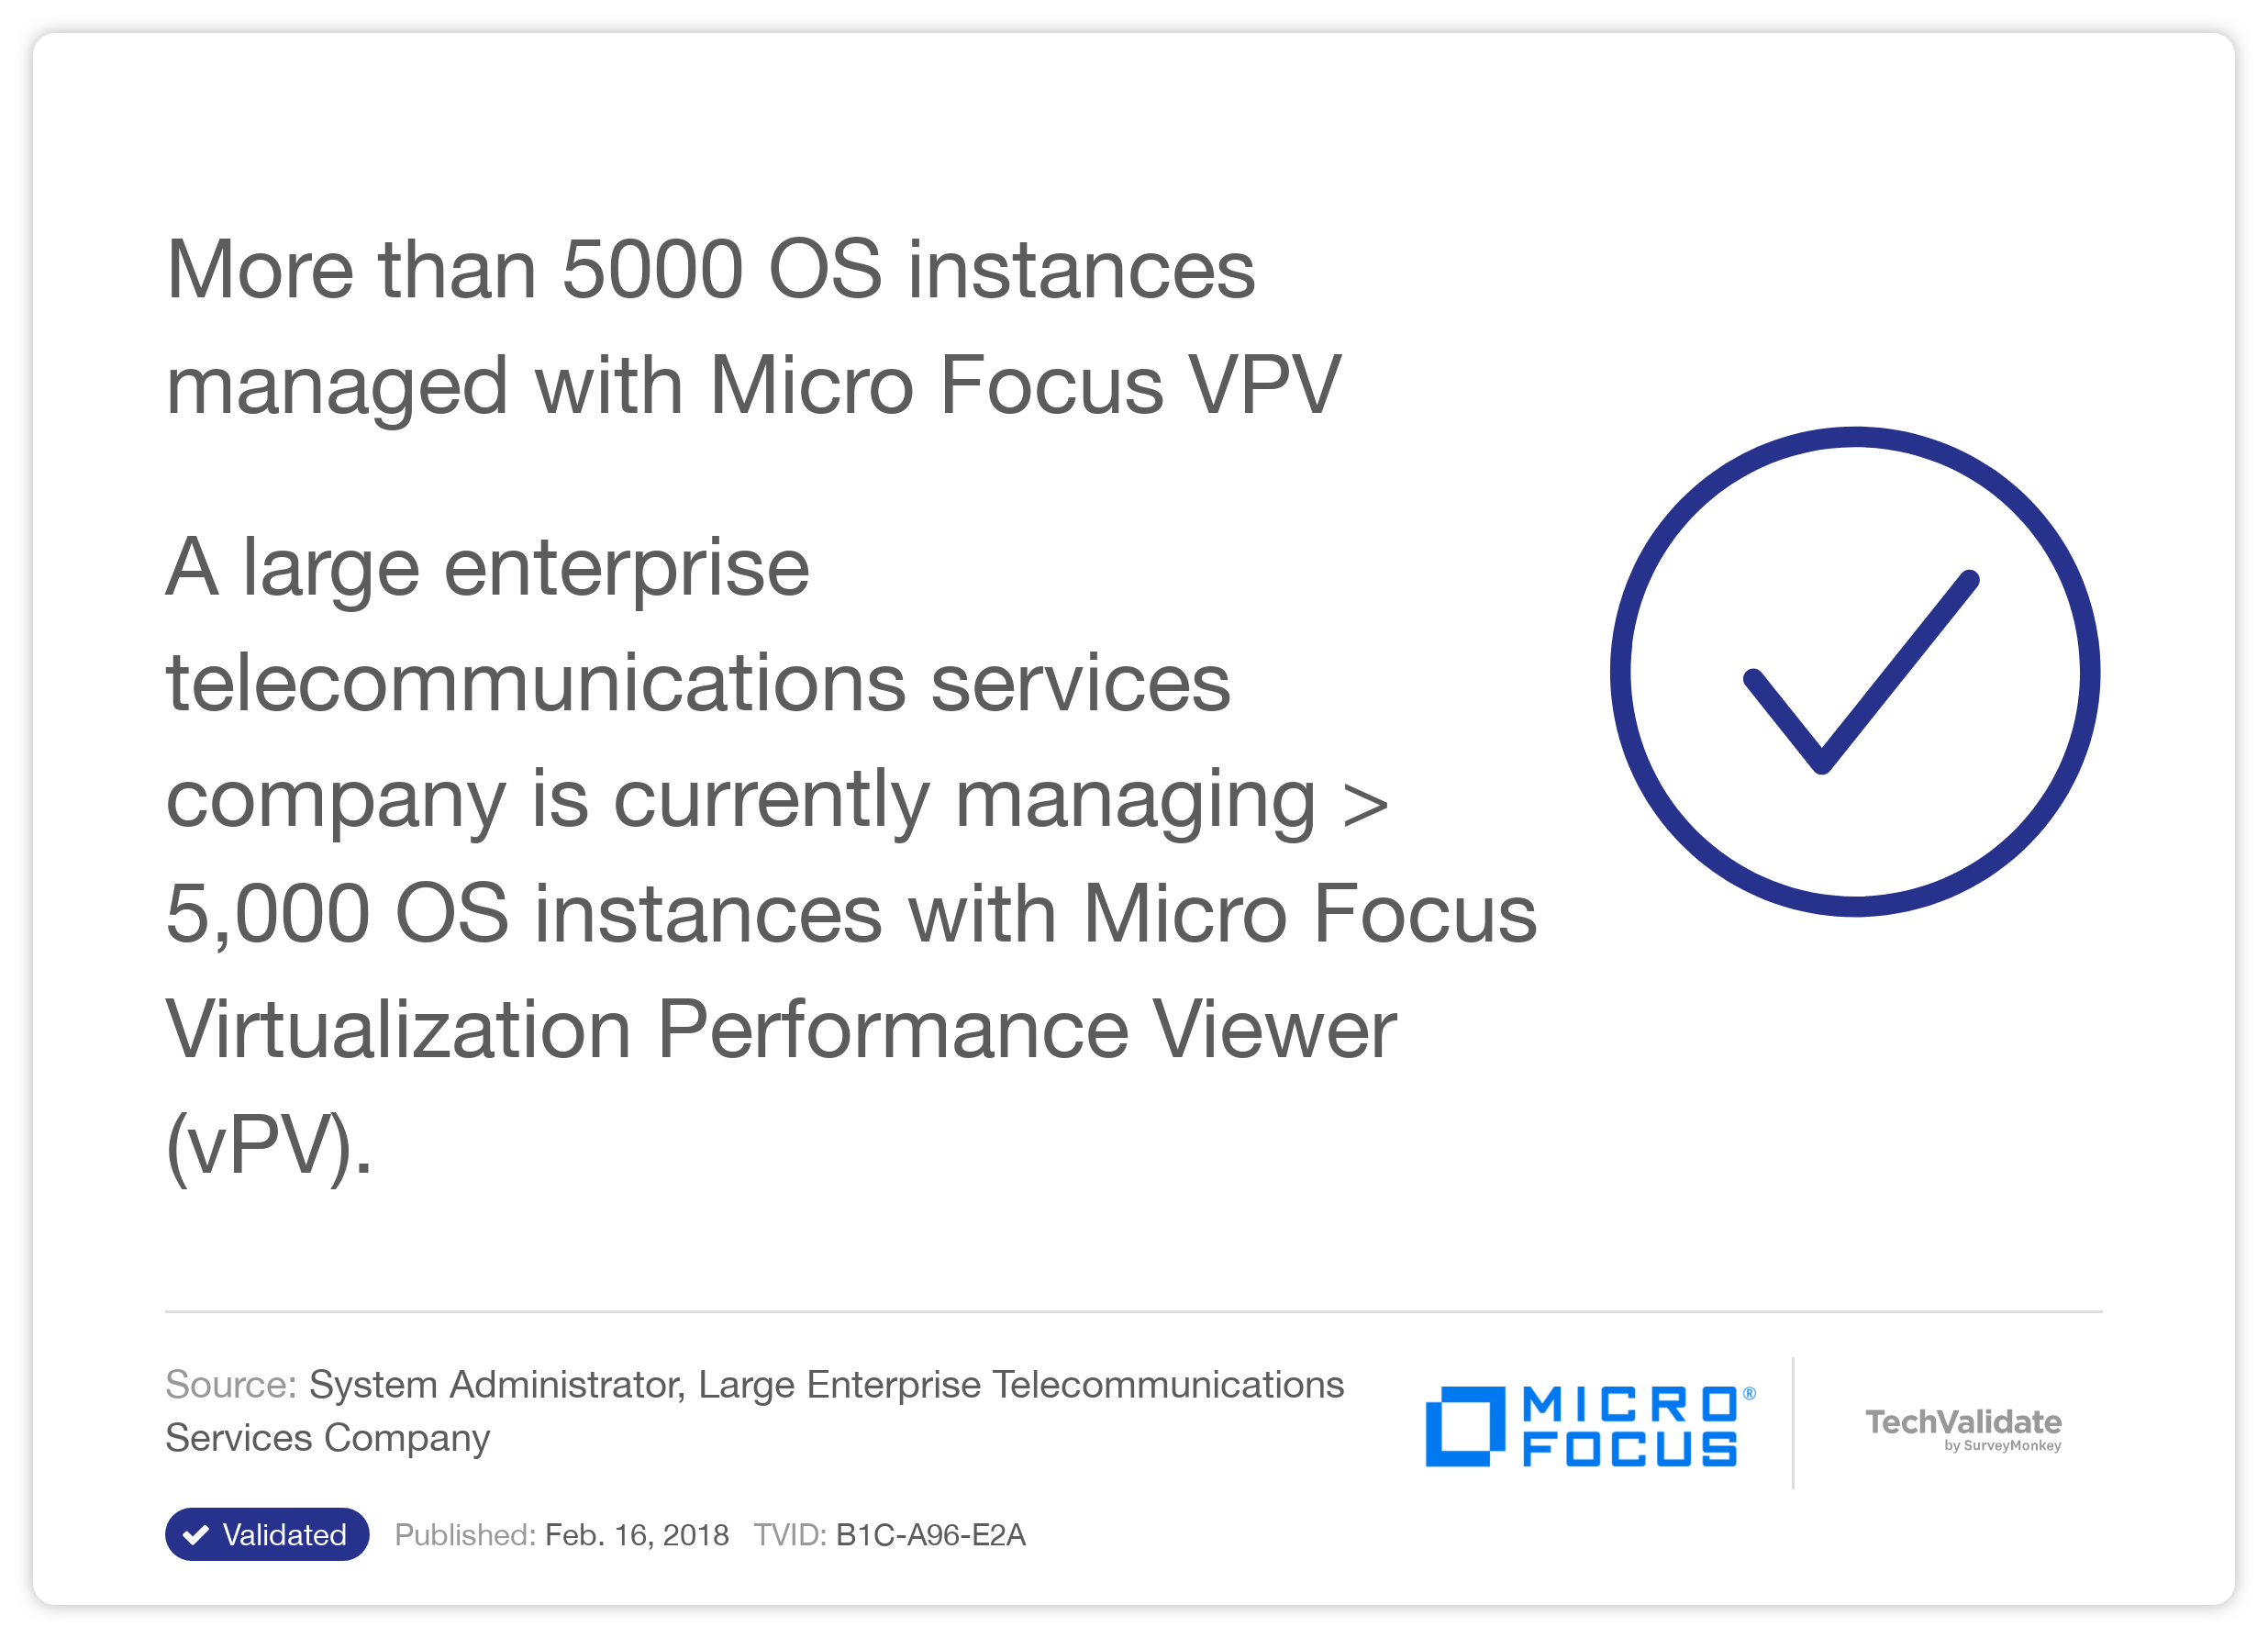 More than 5000 OS instances managed with HP VPV